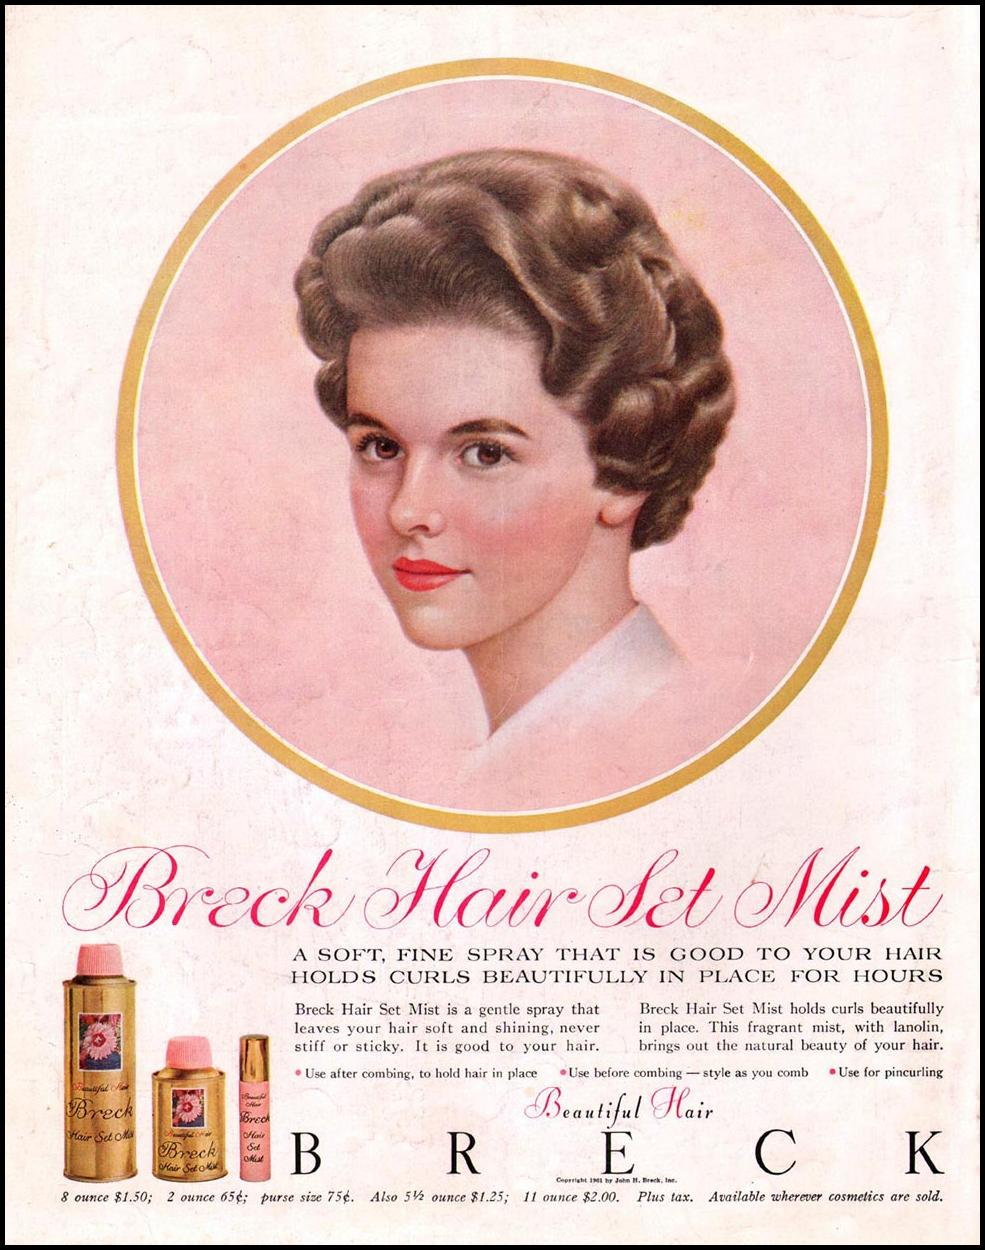 BRECK HAIR SET MIST LADIES' HOME JOURNAL 06/01/1961 BACK COVER